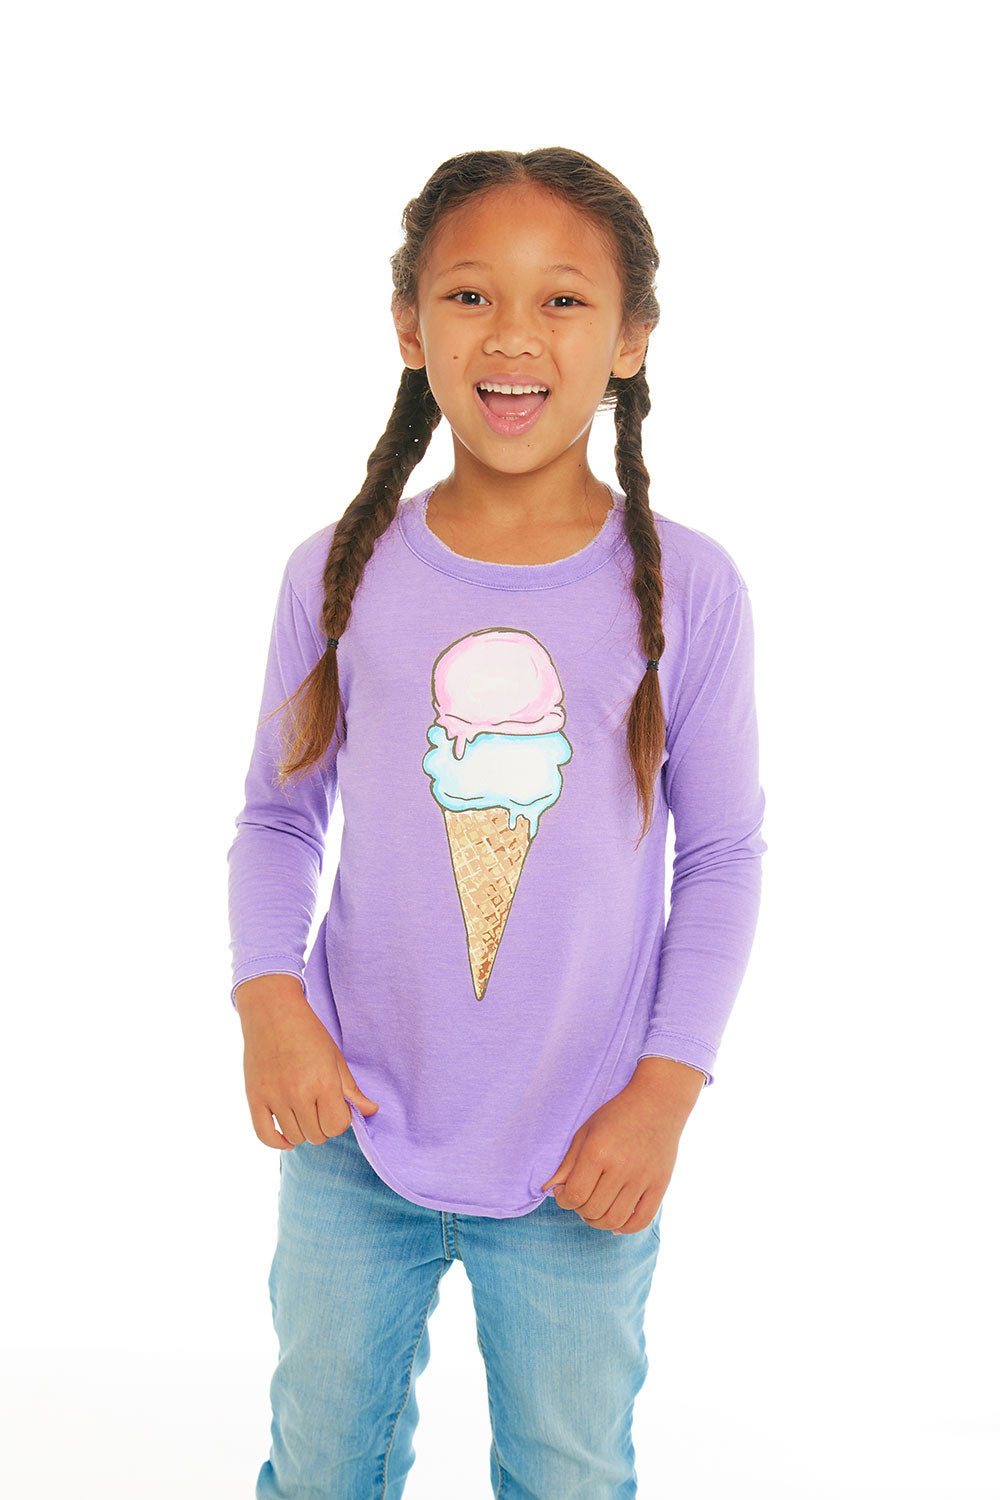 Ice Cream Cone, GIRLS, chaserbrand.com,chaser clothing,chaser apparel,chaser los angeles